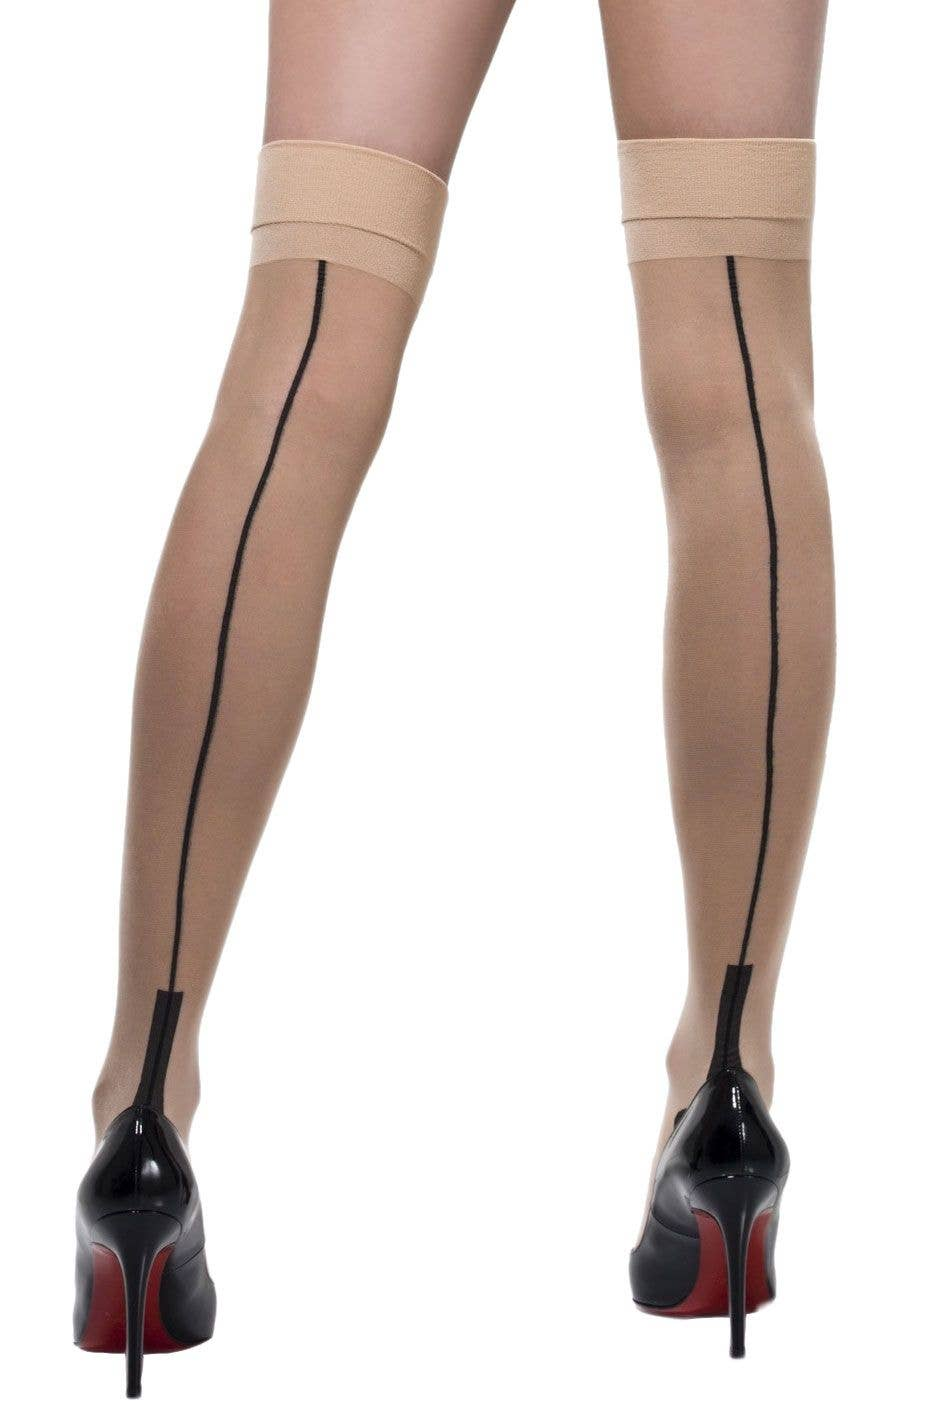 ac33bc66bbdd9 Fever Hosiery Sheer Nude Cuban Heel Thigh High Stockings with Back Seam  Main Image